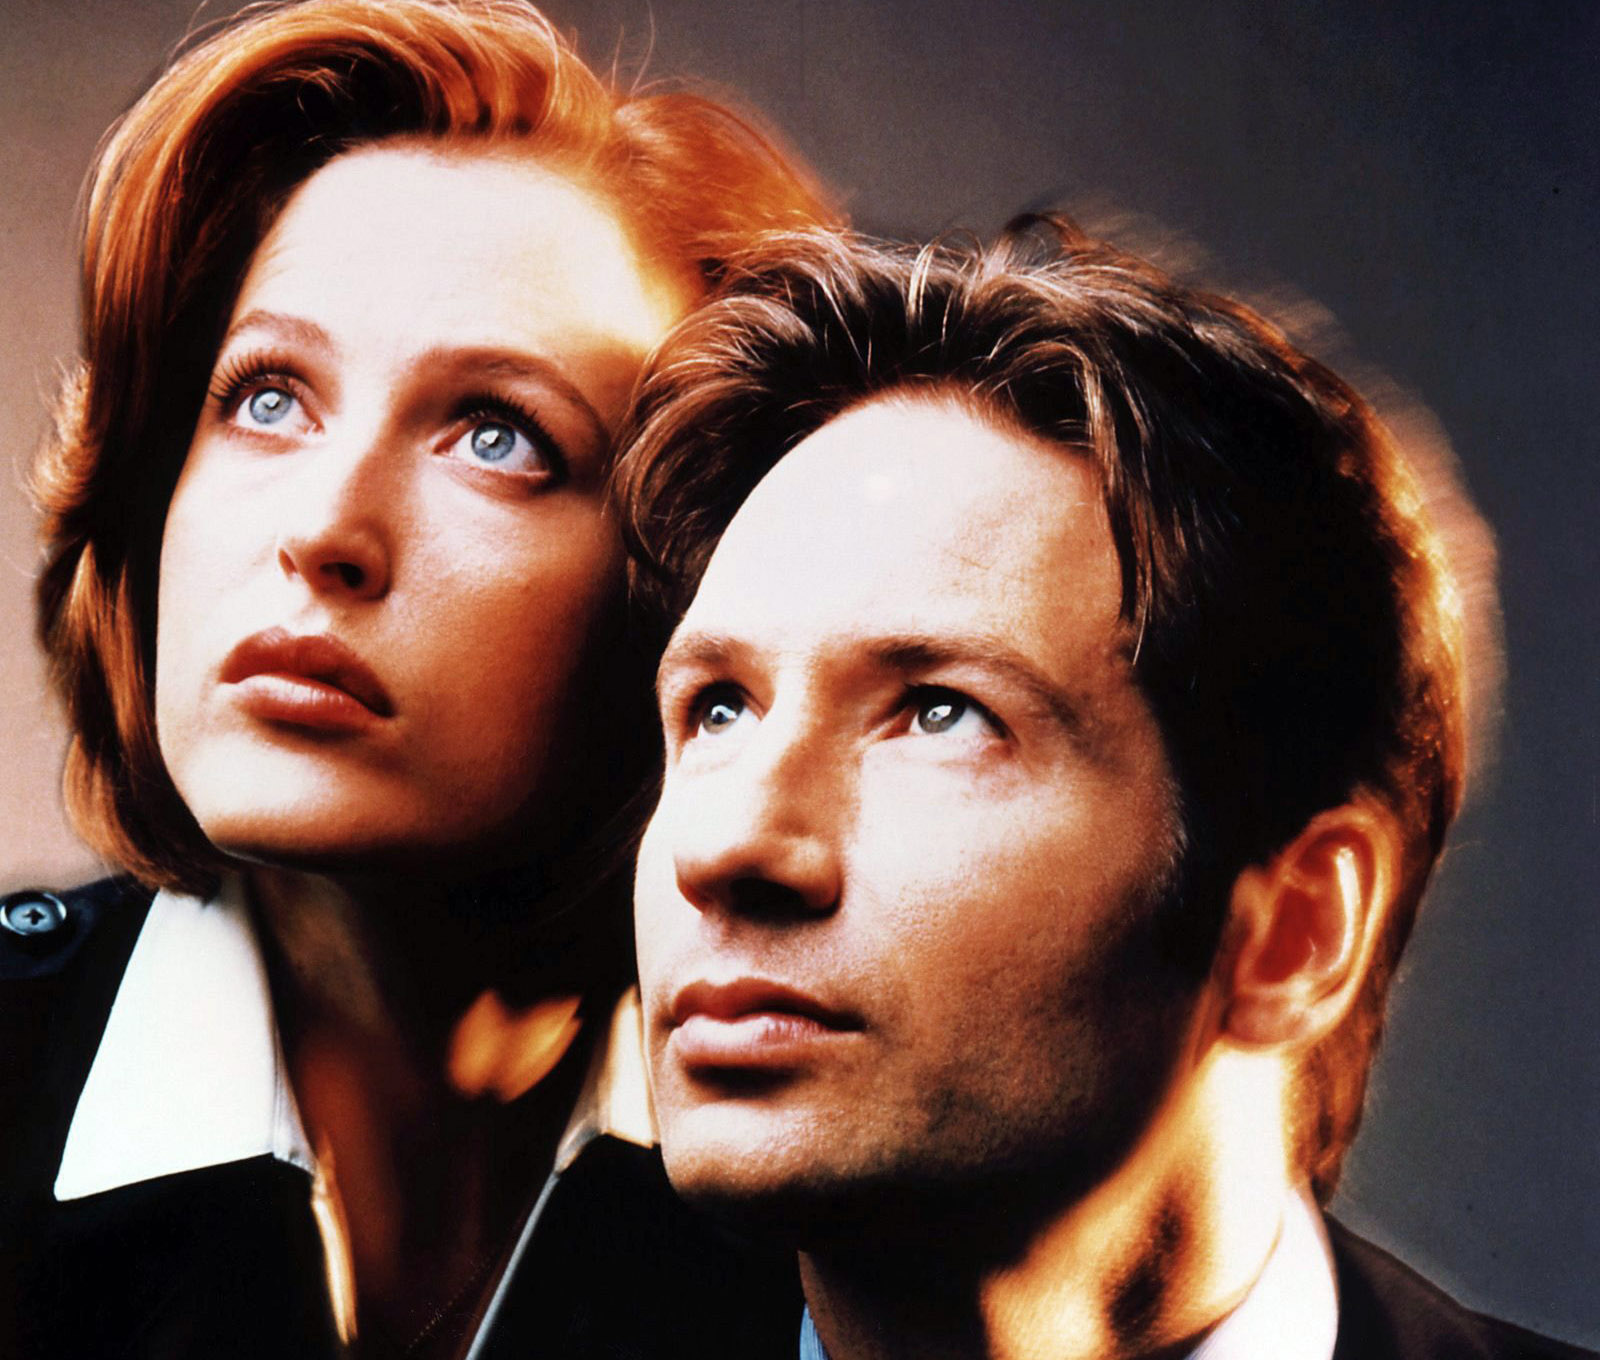 xfiles-scully-mulder-jpg